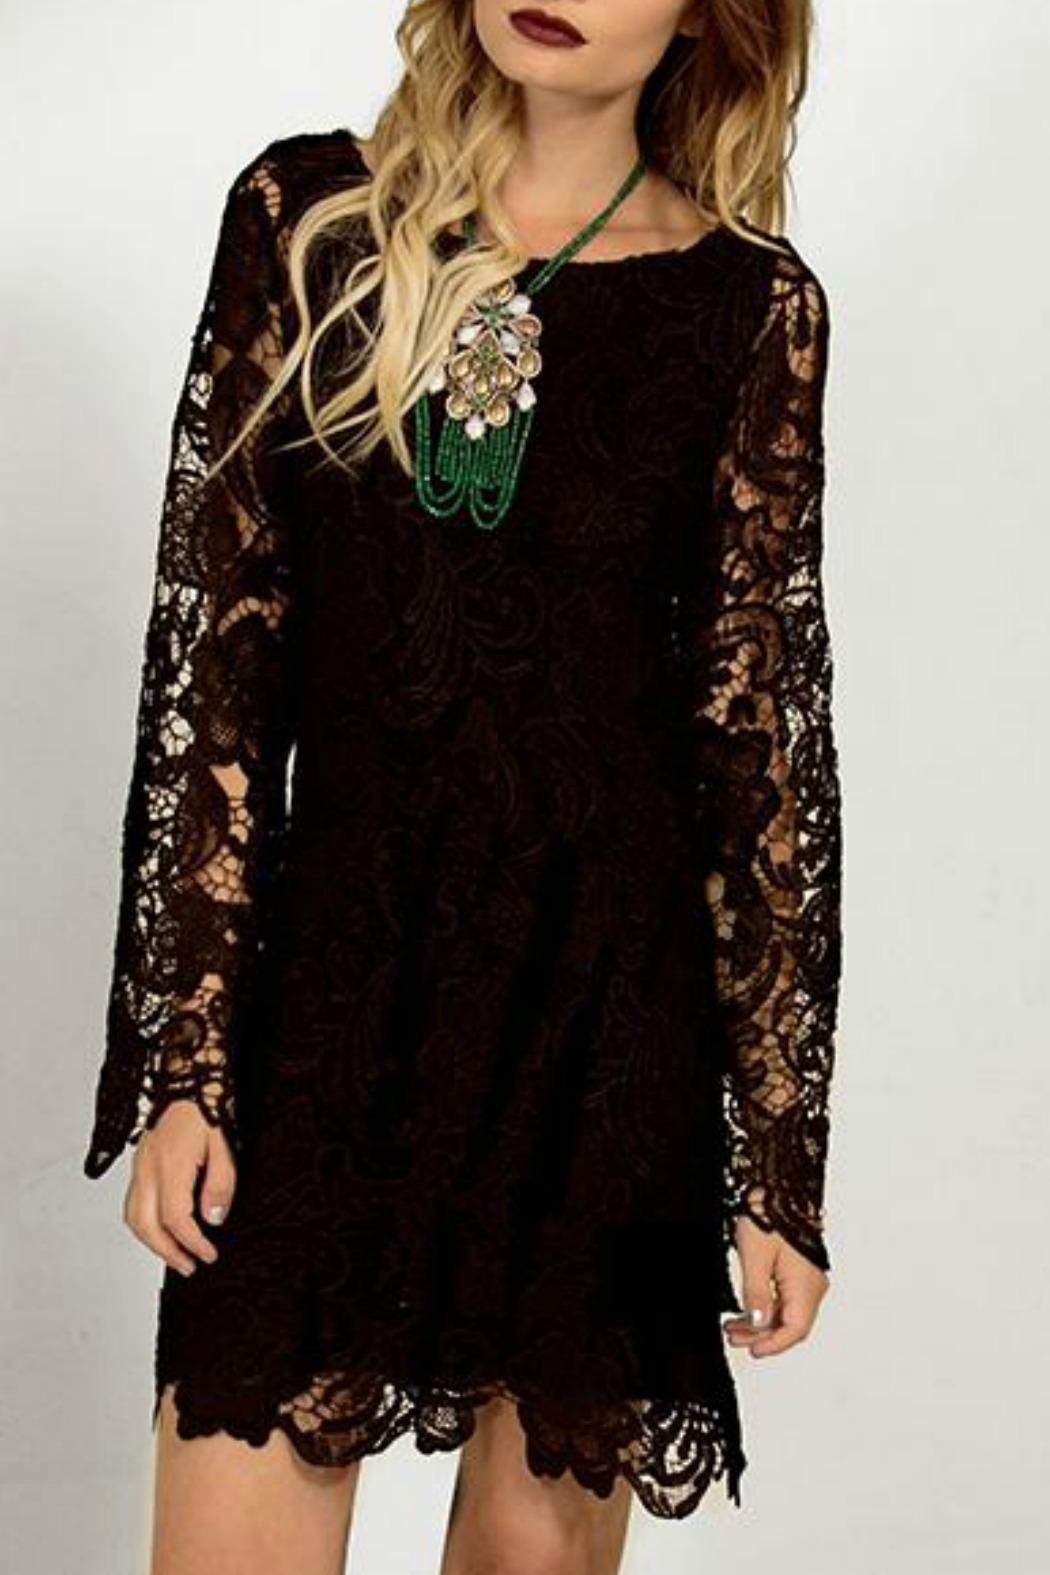 Astars Lace Crochet Shift-Dress - Main Image